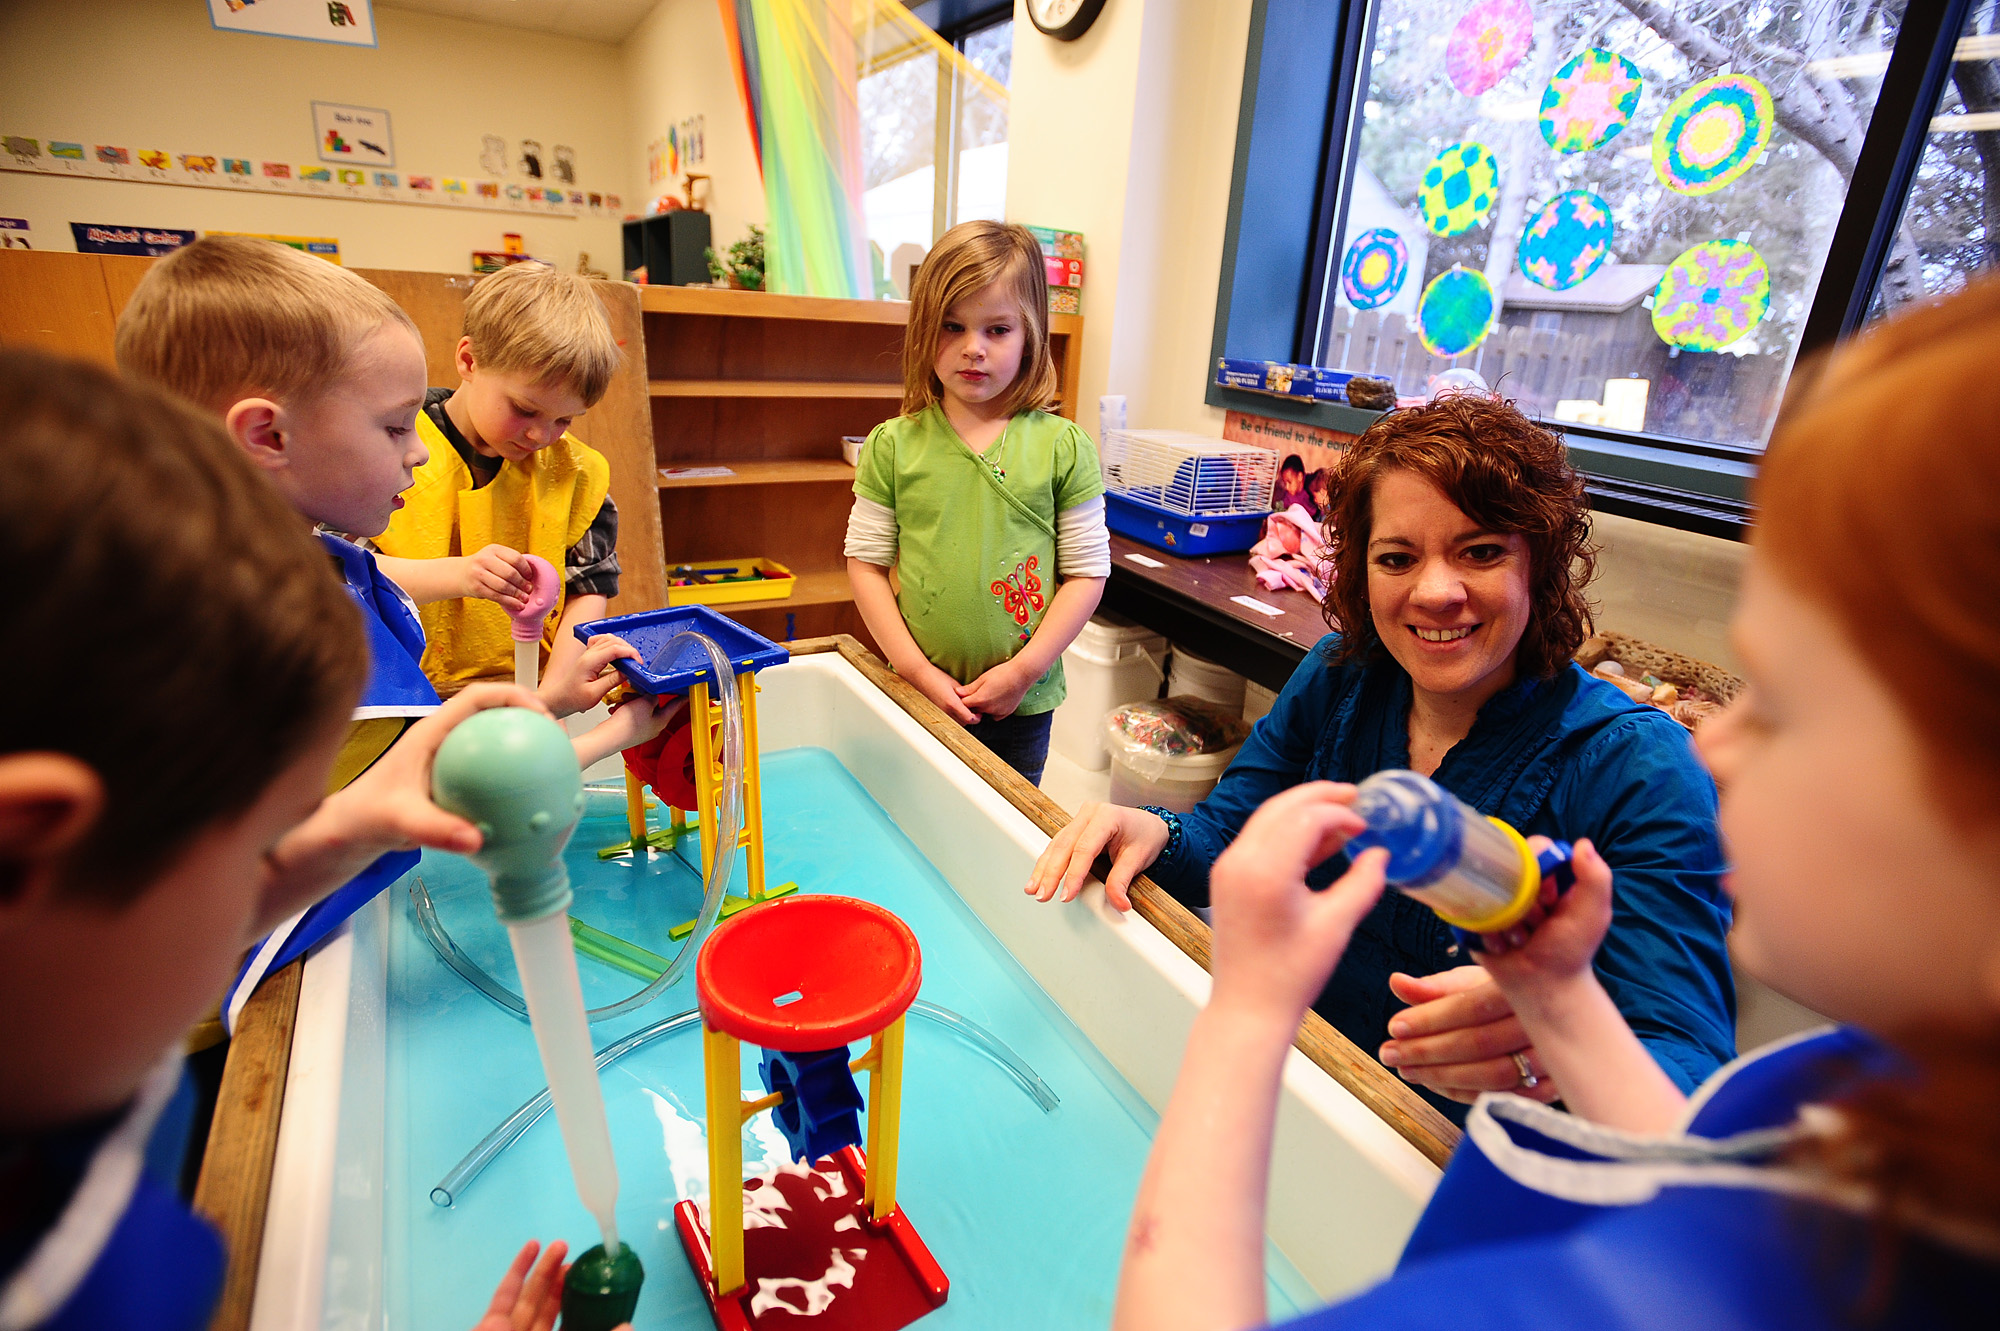 Competitive Preschools - Characteristics of a Good Preschool